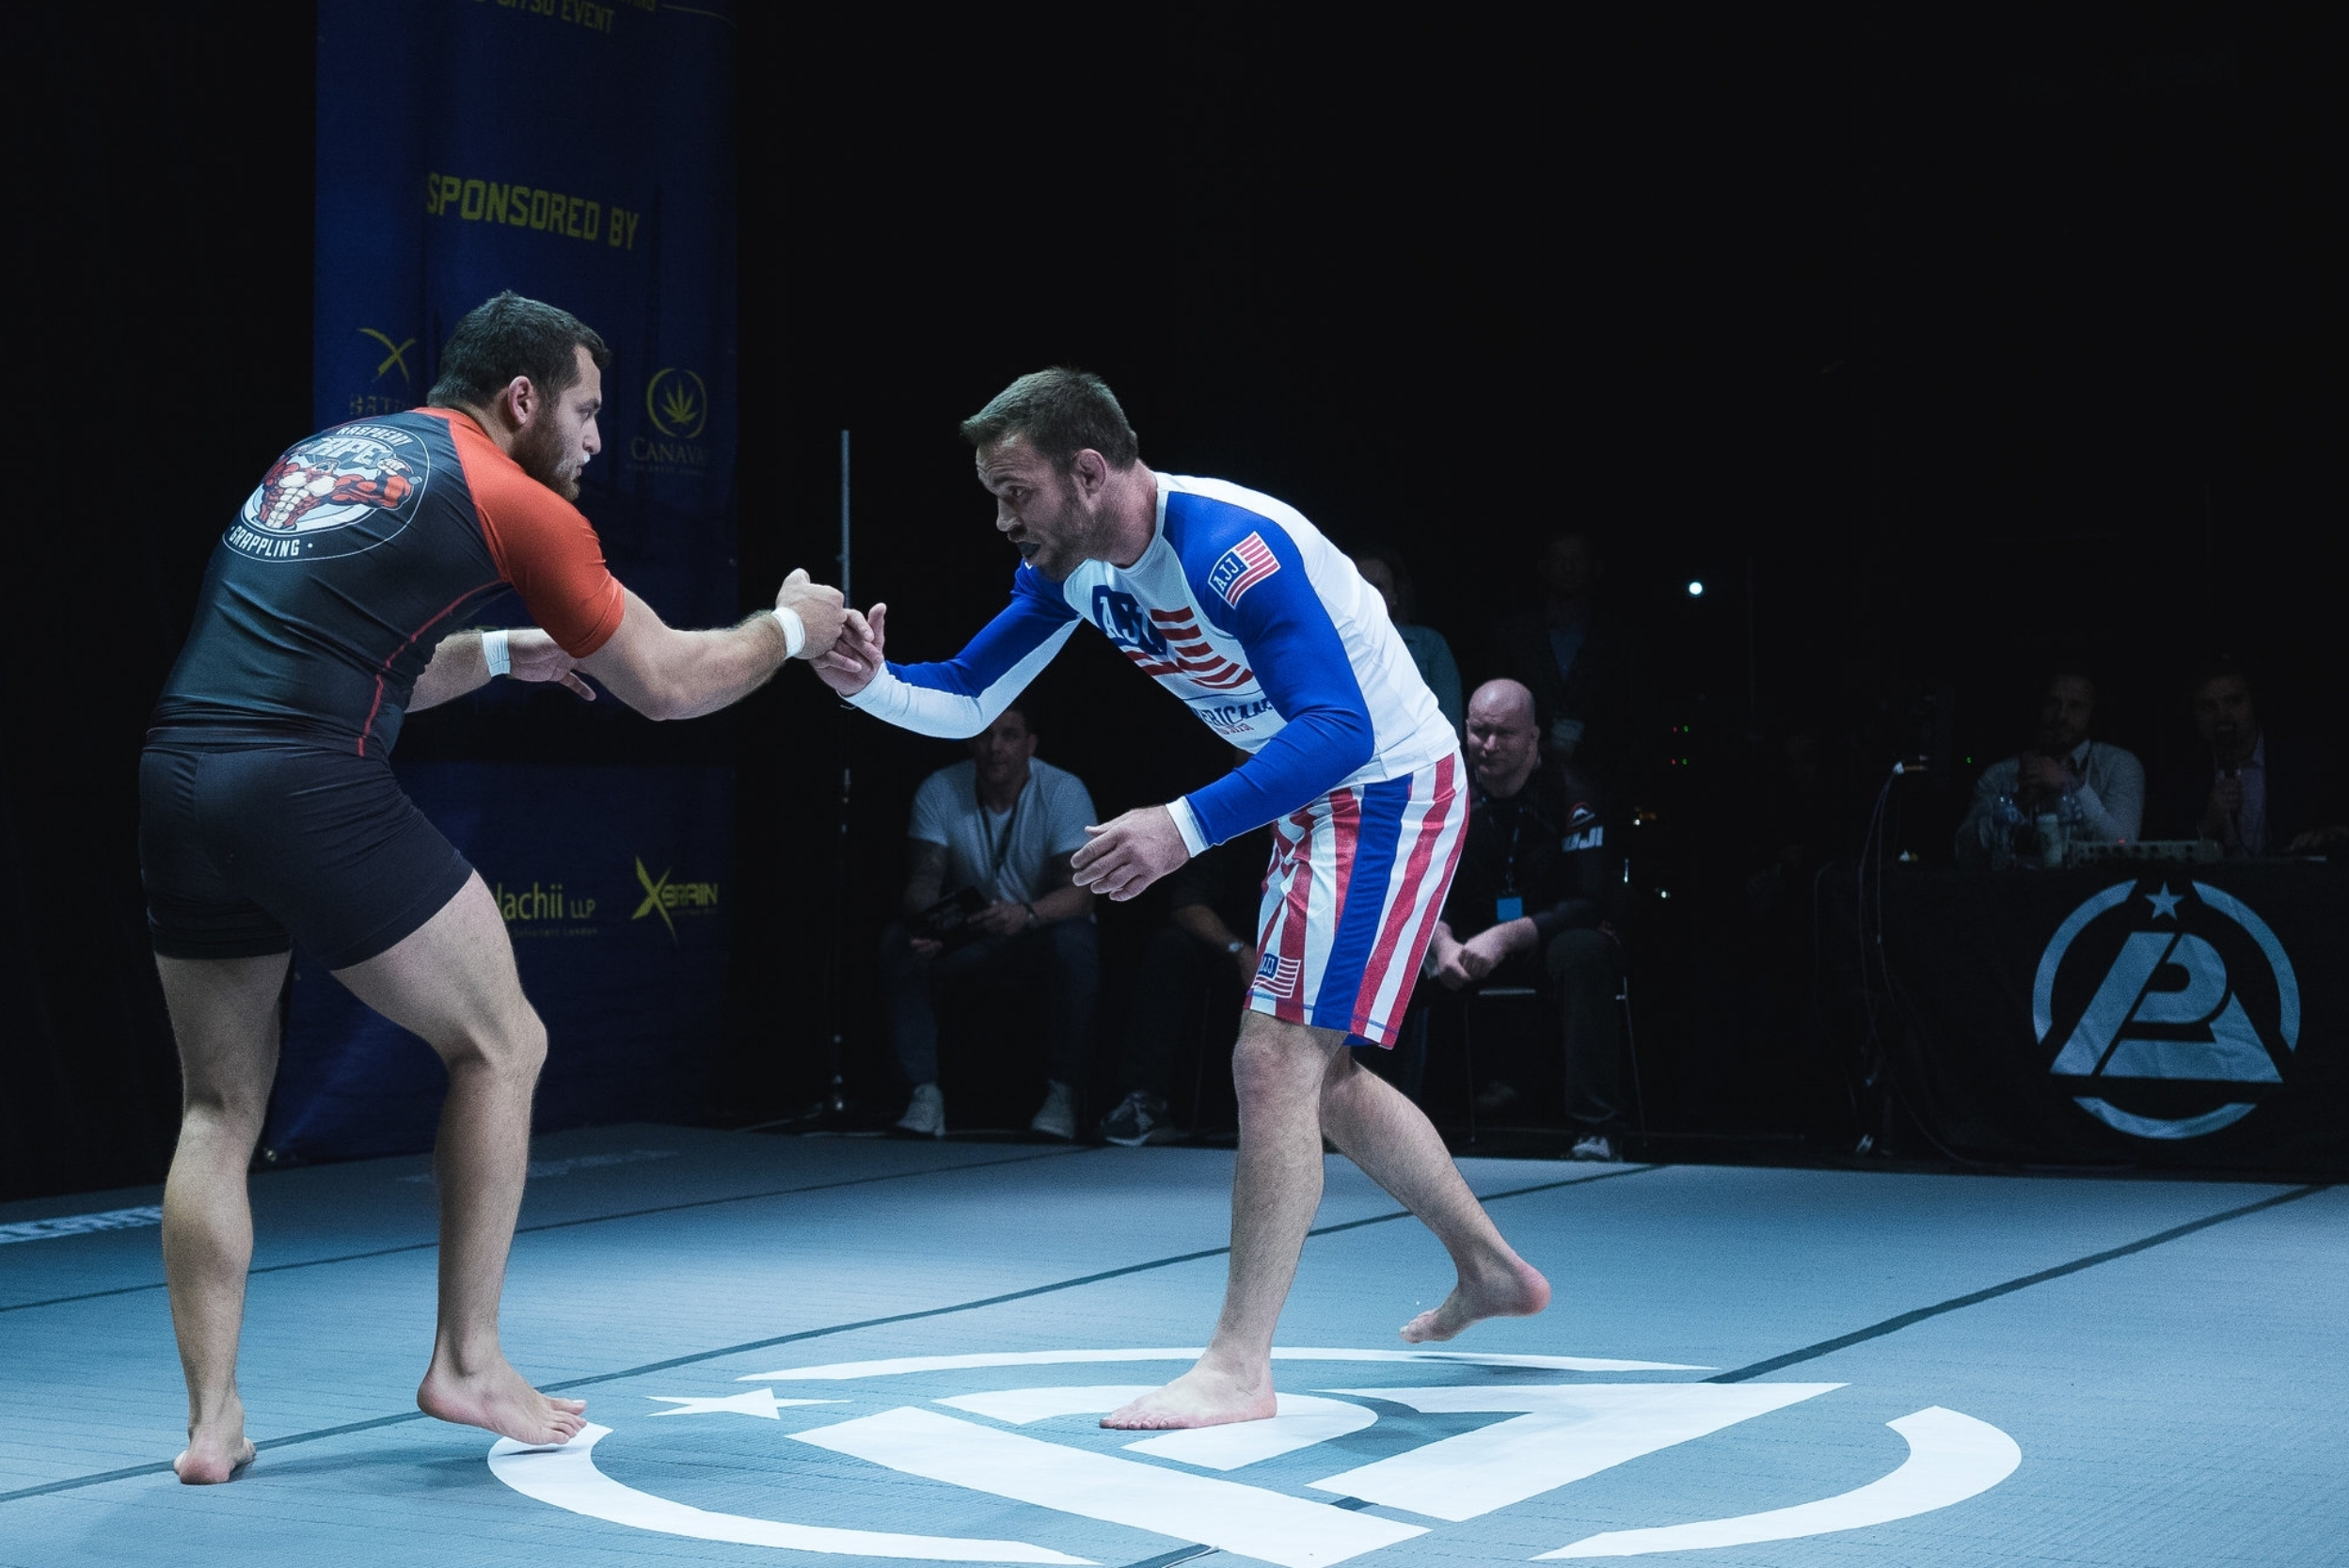 Charismatic UK star Dan Strauss of Mill Hill BJJ, London puts on a game display against grappling maestro and MMA stand-out Jake Shields, but loses by majority decision. Shields' super-coach John Danaher looks on. Photo by  Luke Jarvis  .